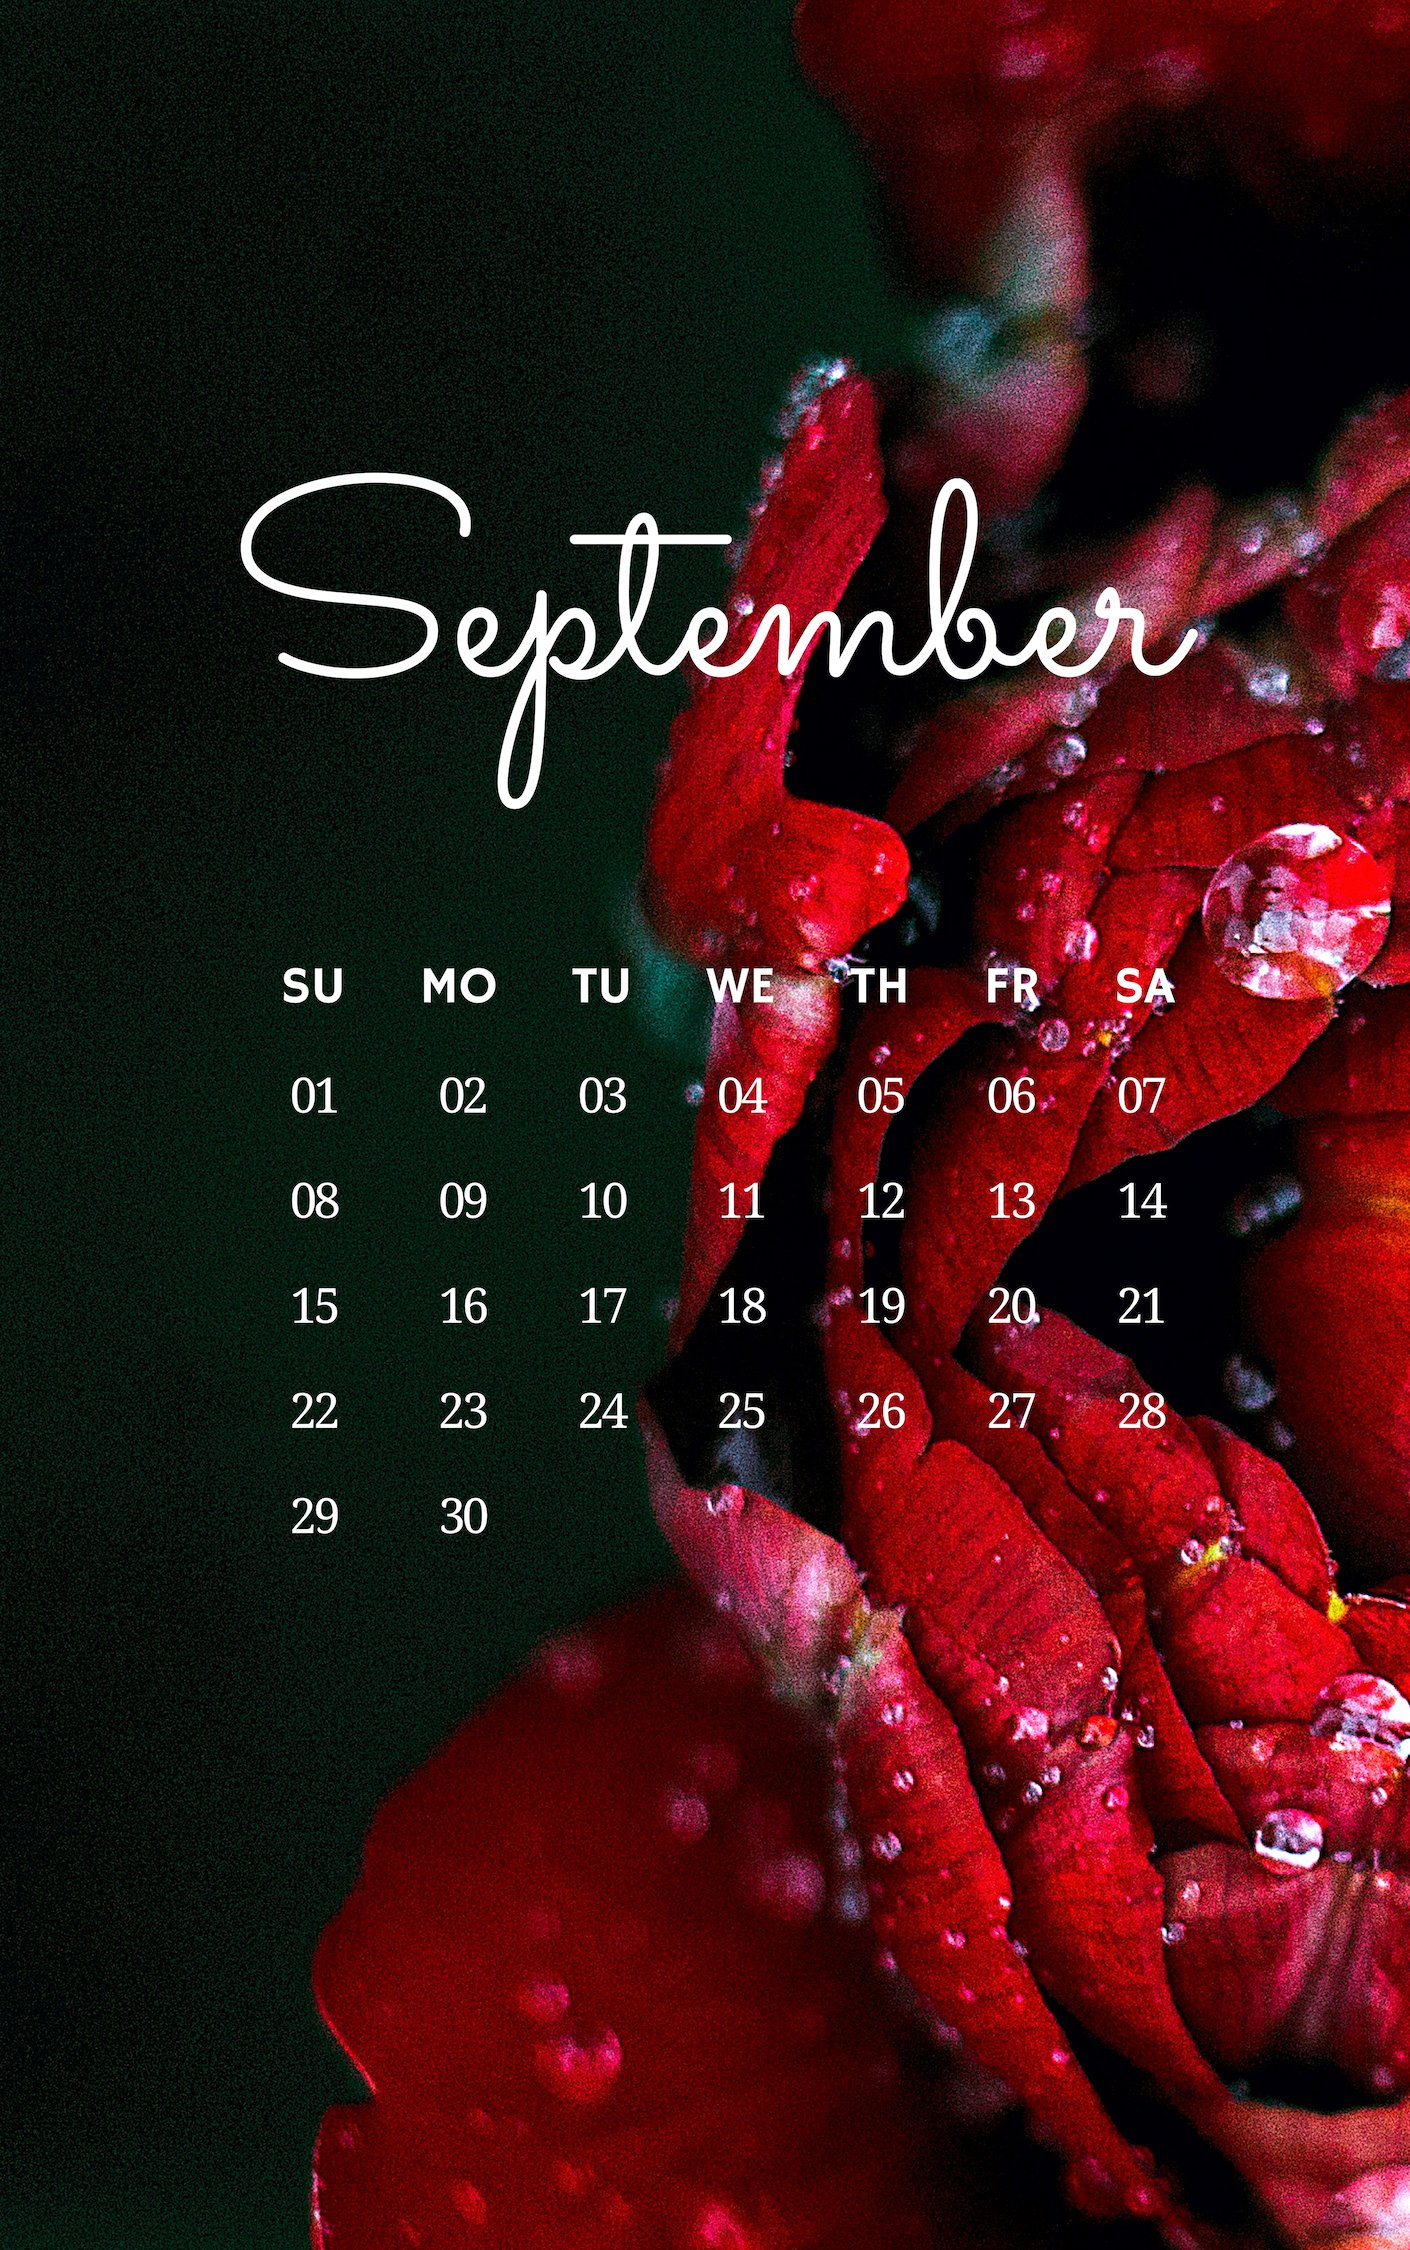 September 2019 iPhone Flower Wallpaper